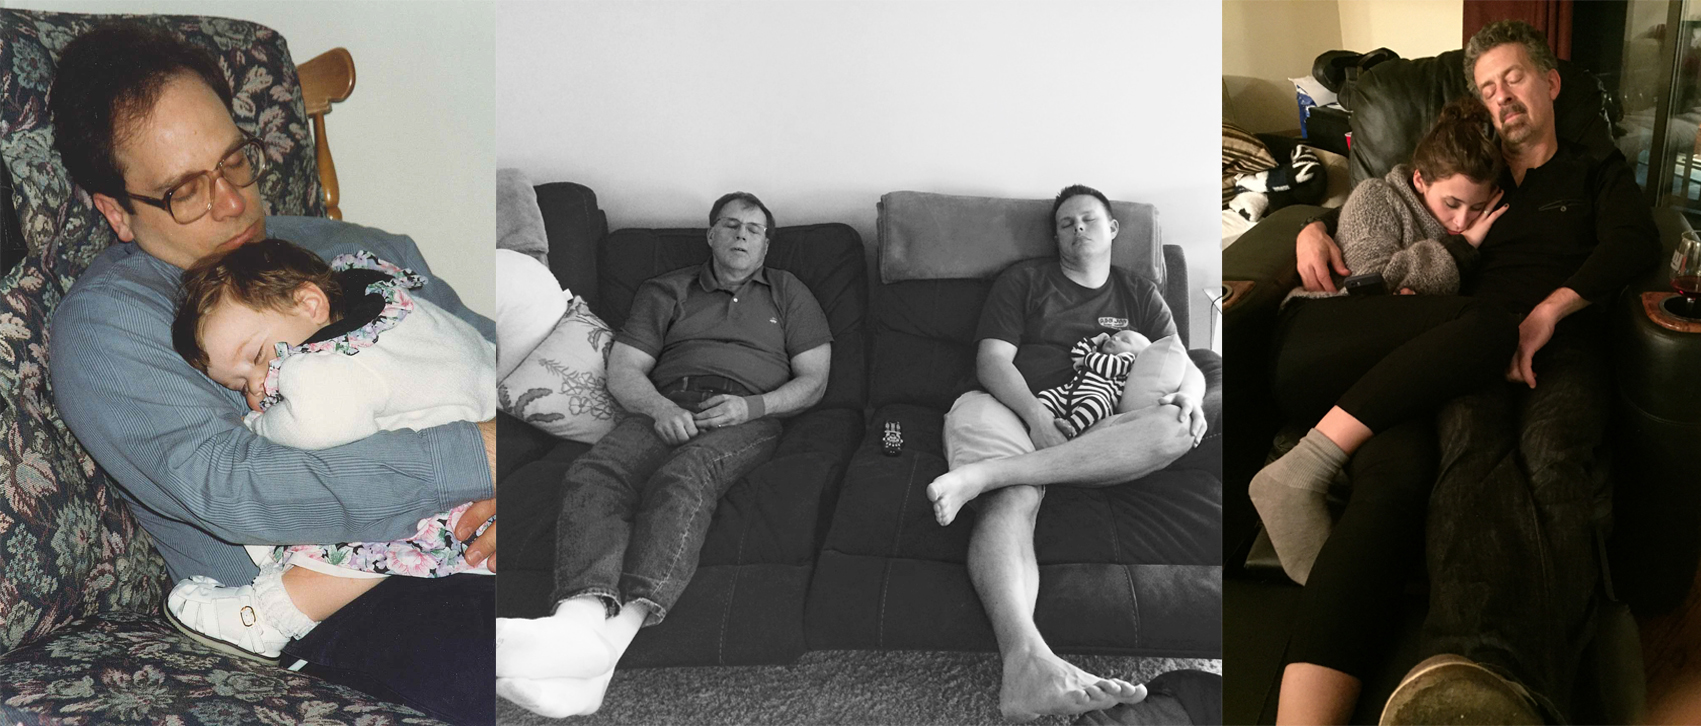 3 images of dads napping with their children, some infants some teenagers